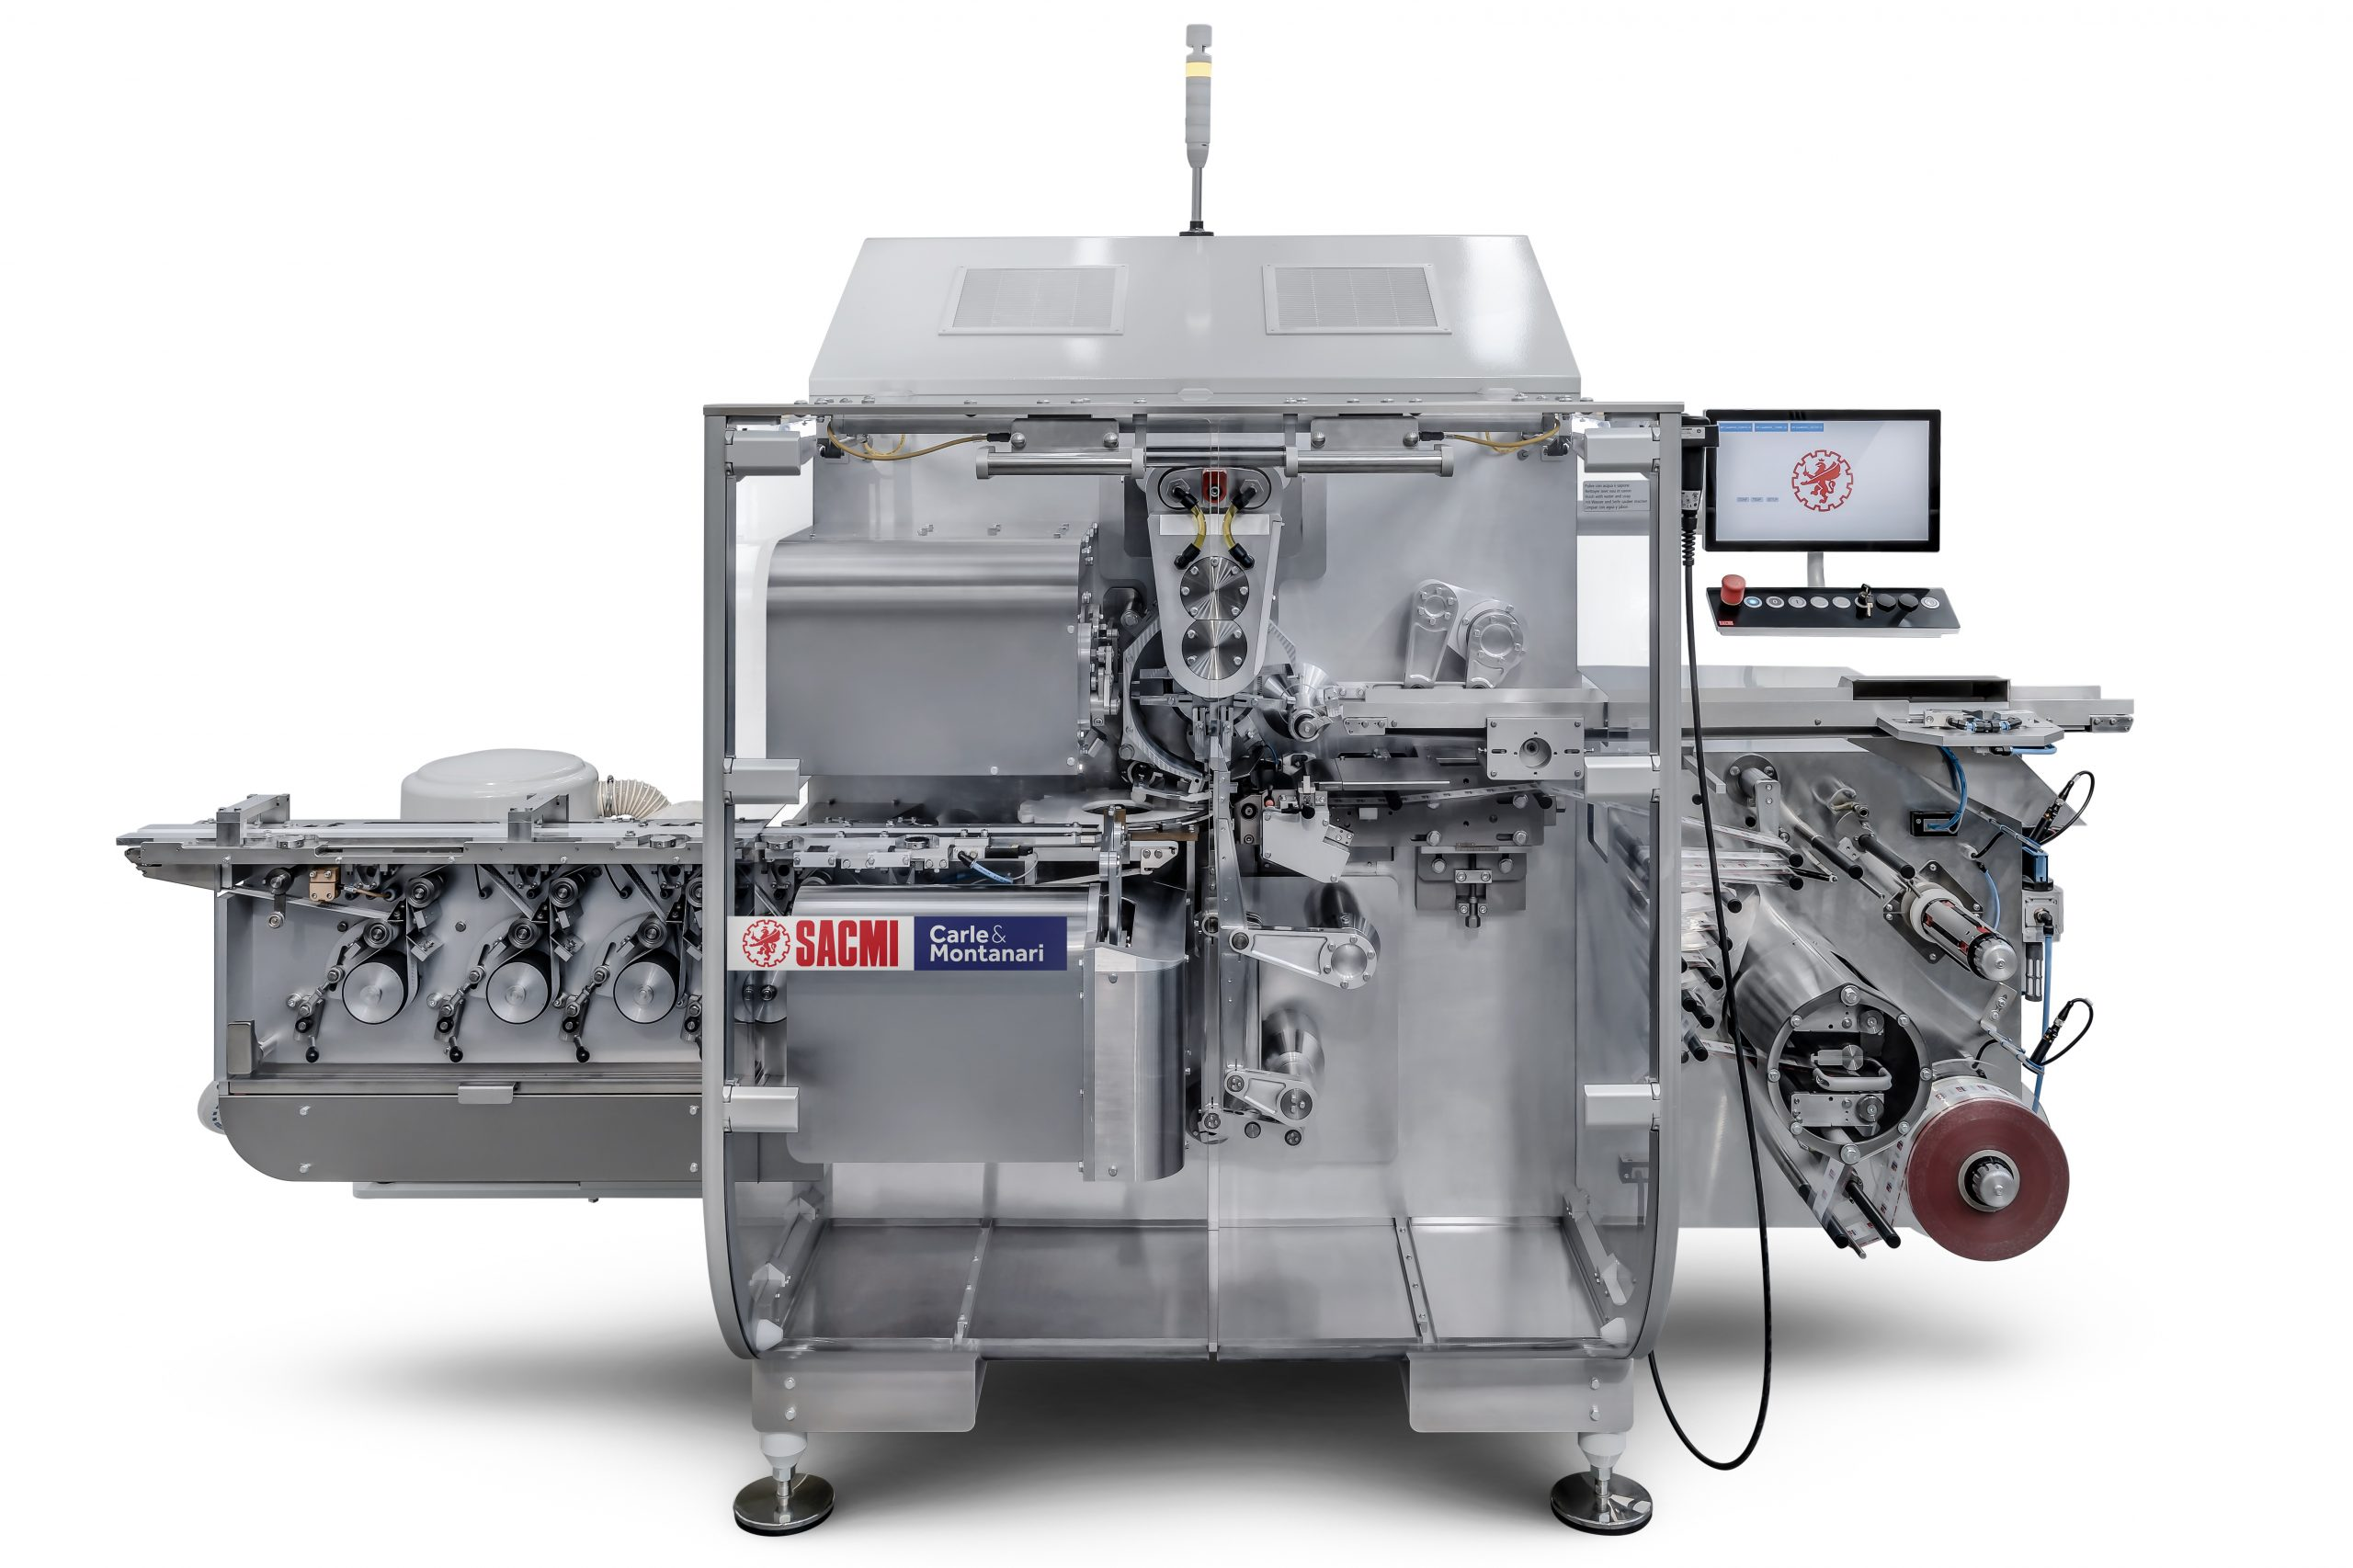 Hybrid, modular, high-performance: SACMI Packaging & Chocolate presents the new HY7 wrapping machine